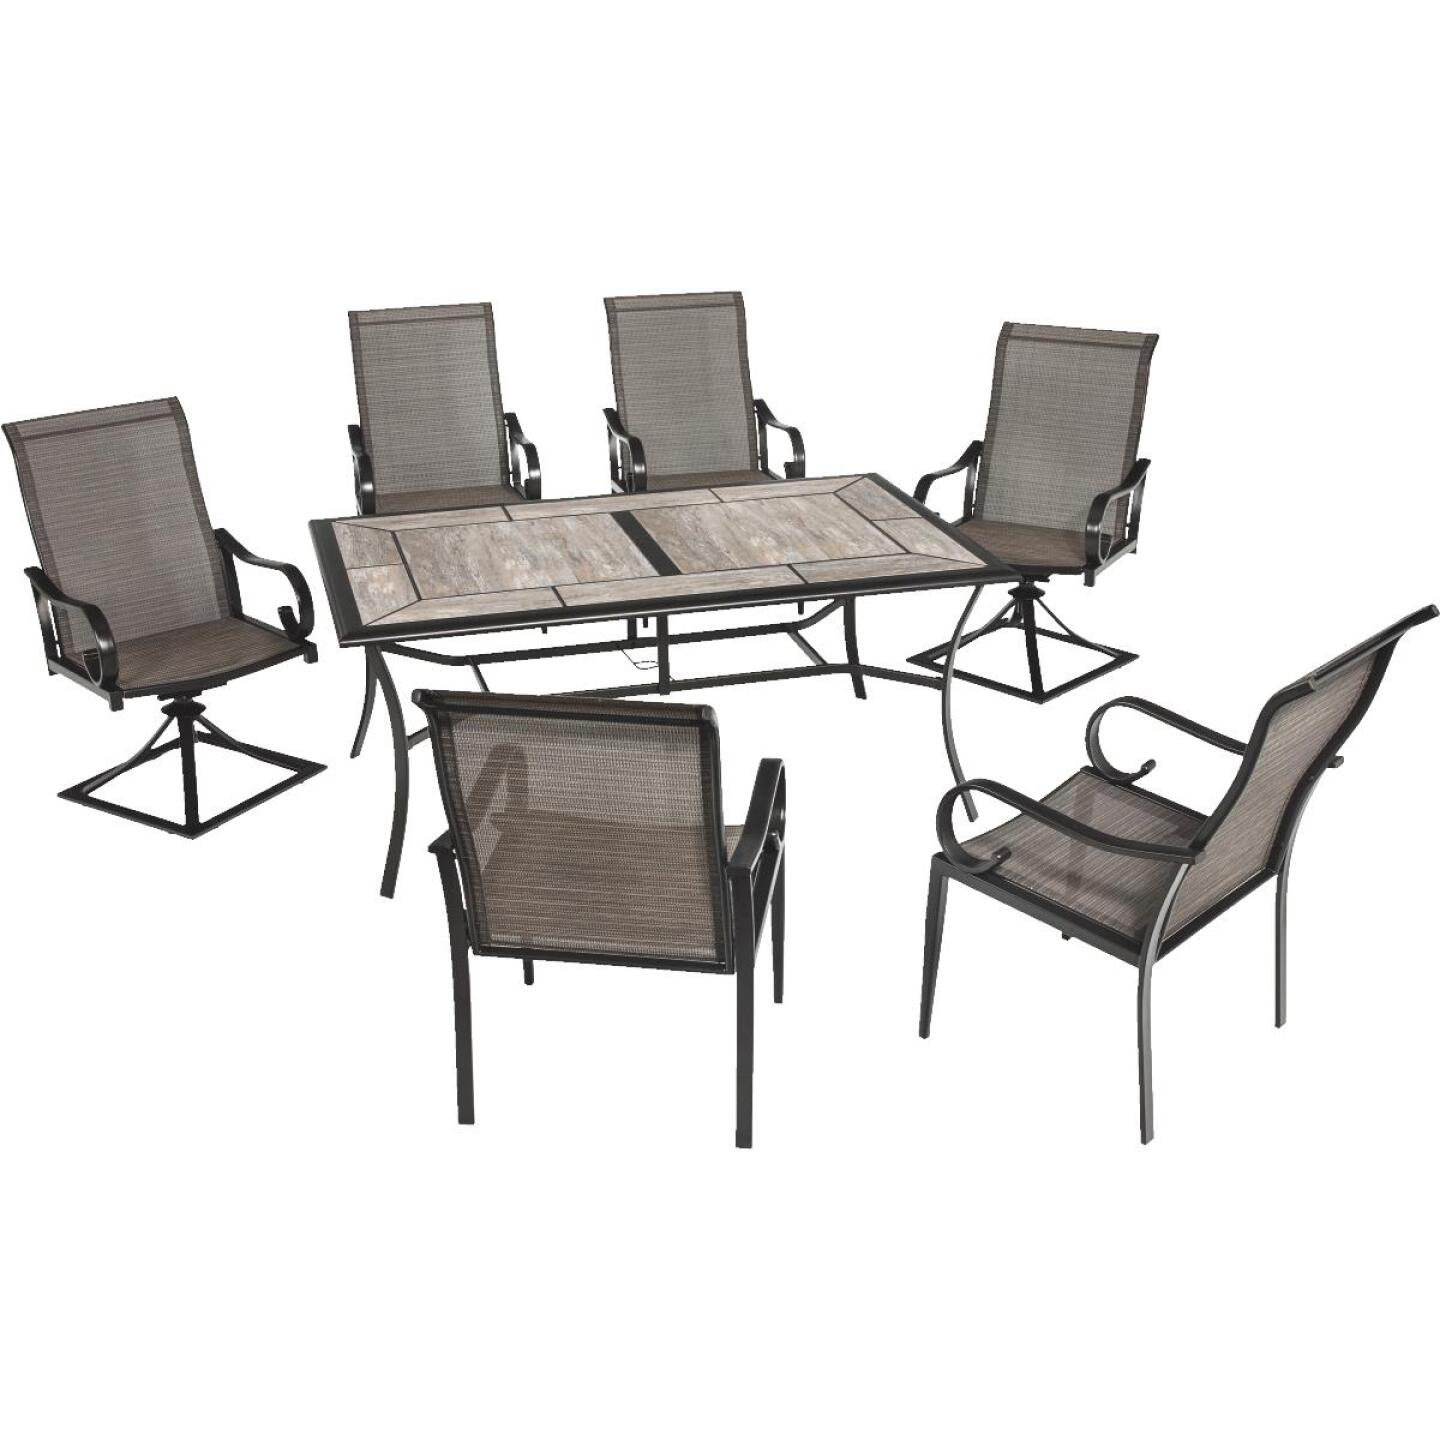 Outdoor Expressions Berkshire 7-Piece Dining Set Image 48